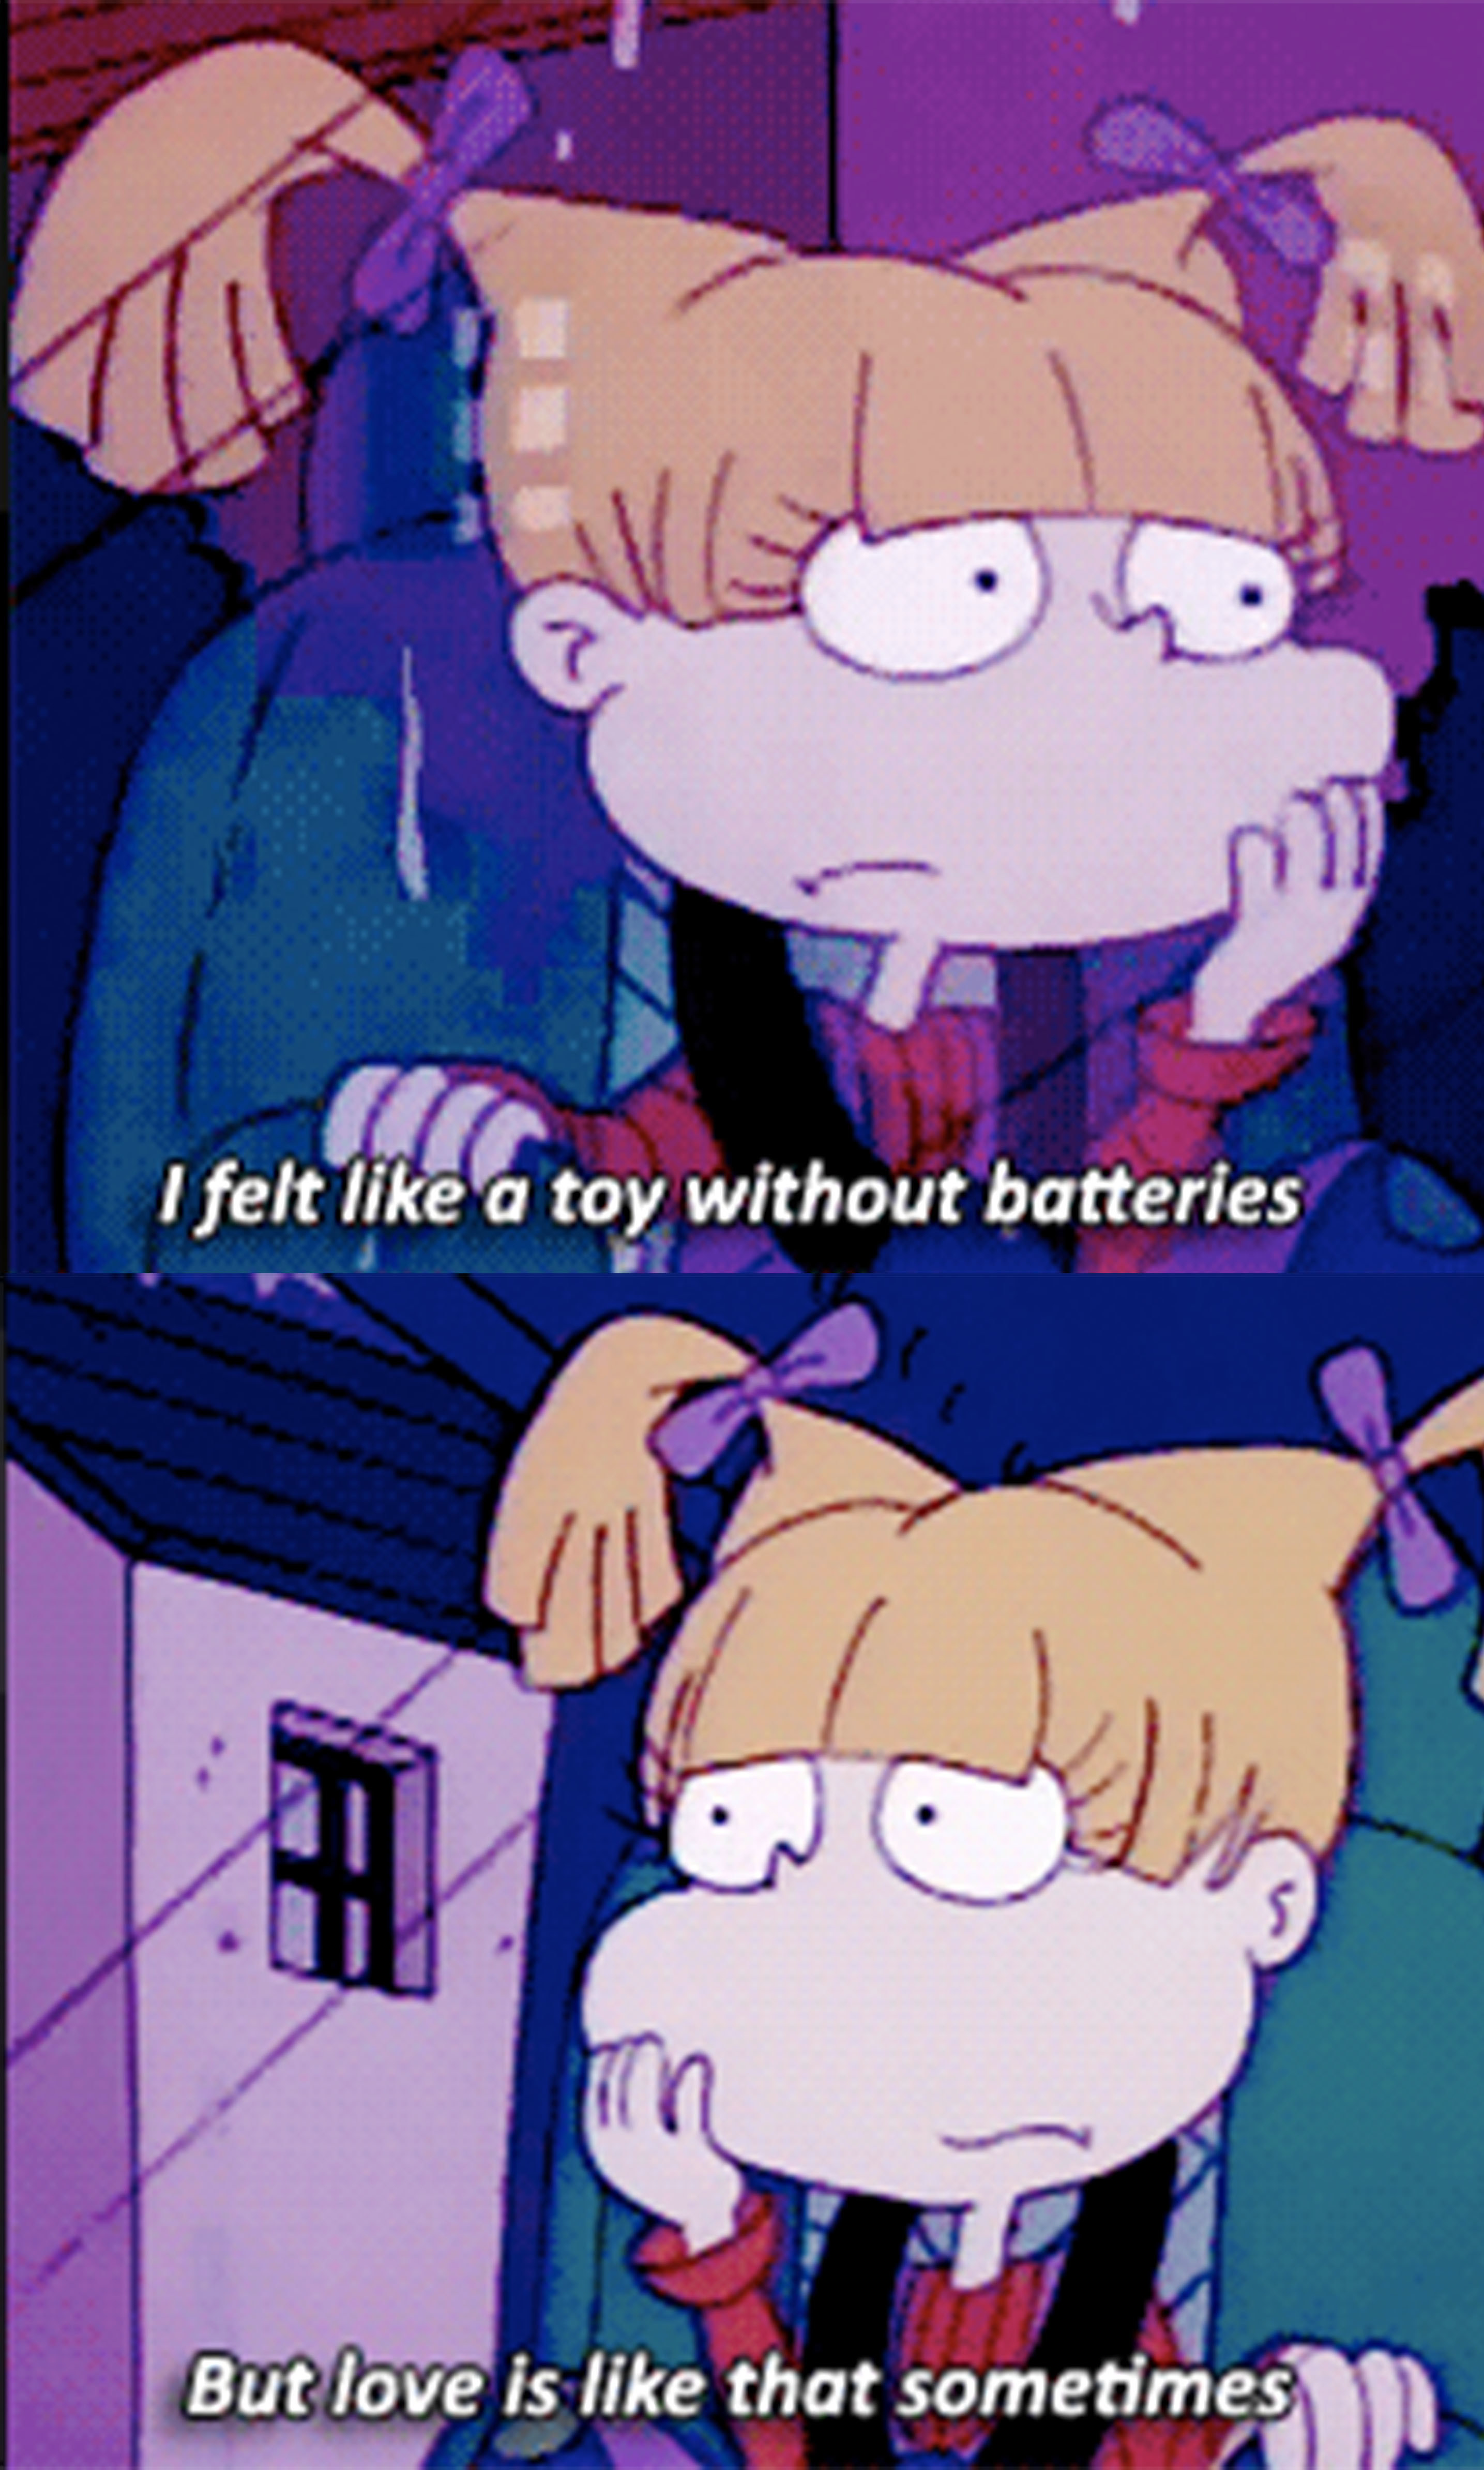 """Angelica: """"I felt like a toy without batteries, but love is like that sometimes"""""""